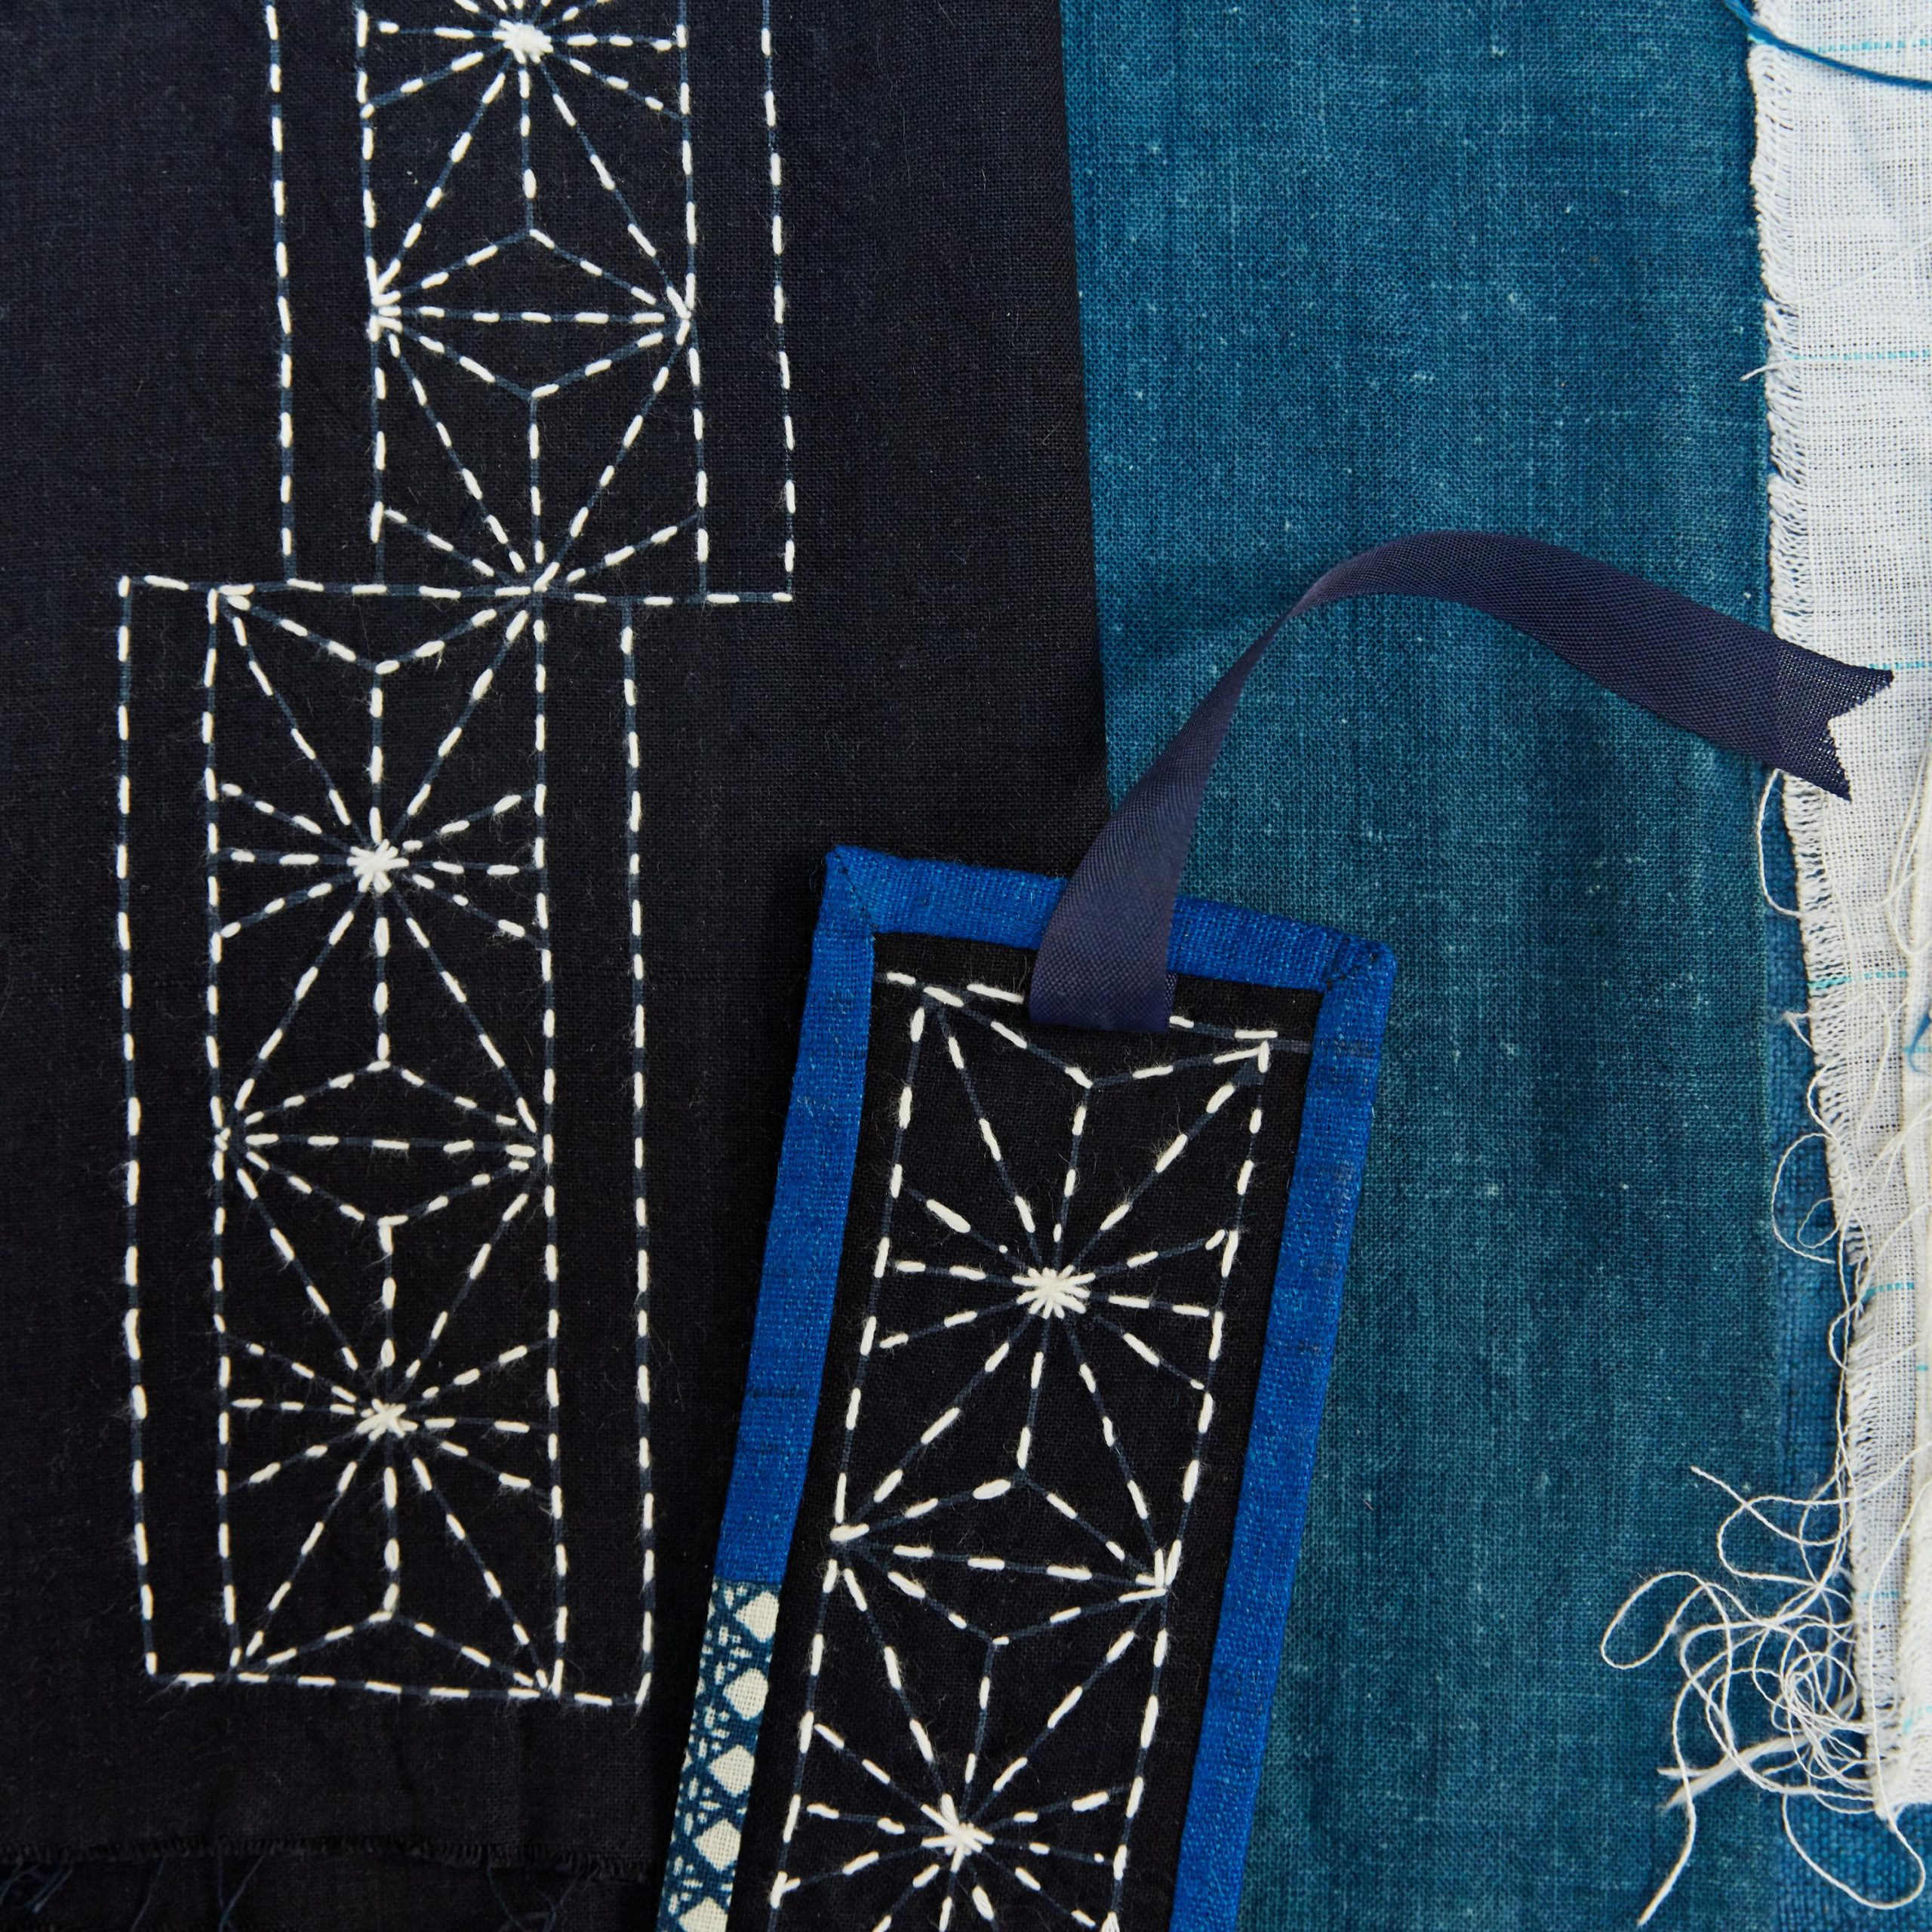 Sashiko: The Japanese Art Of Mending Fabric With Beautiful Intended For Best And Newest Blended Fabric Hello Beauty Full Wall Hangings (View 18 of 20)